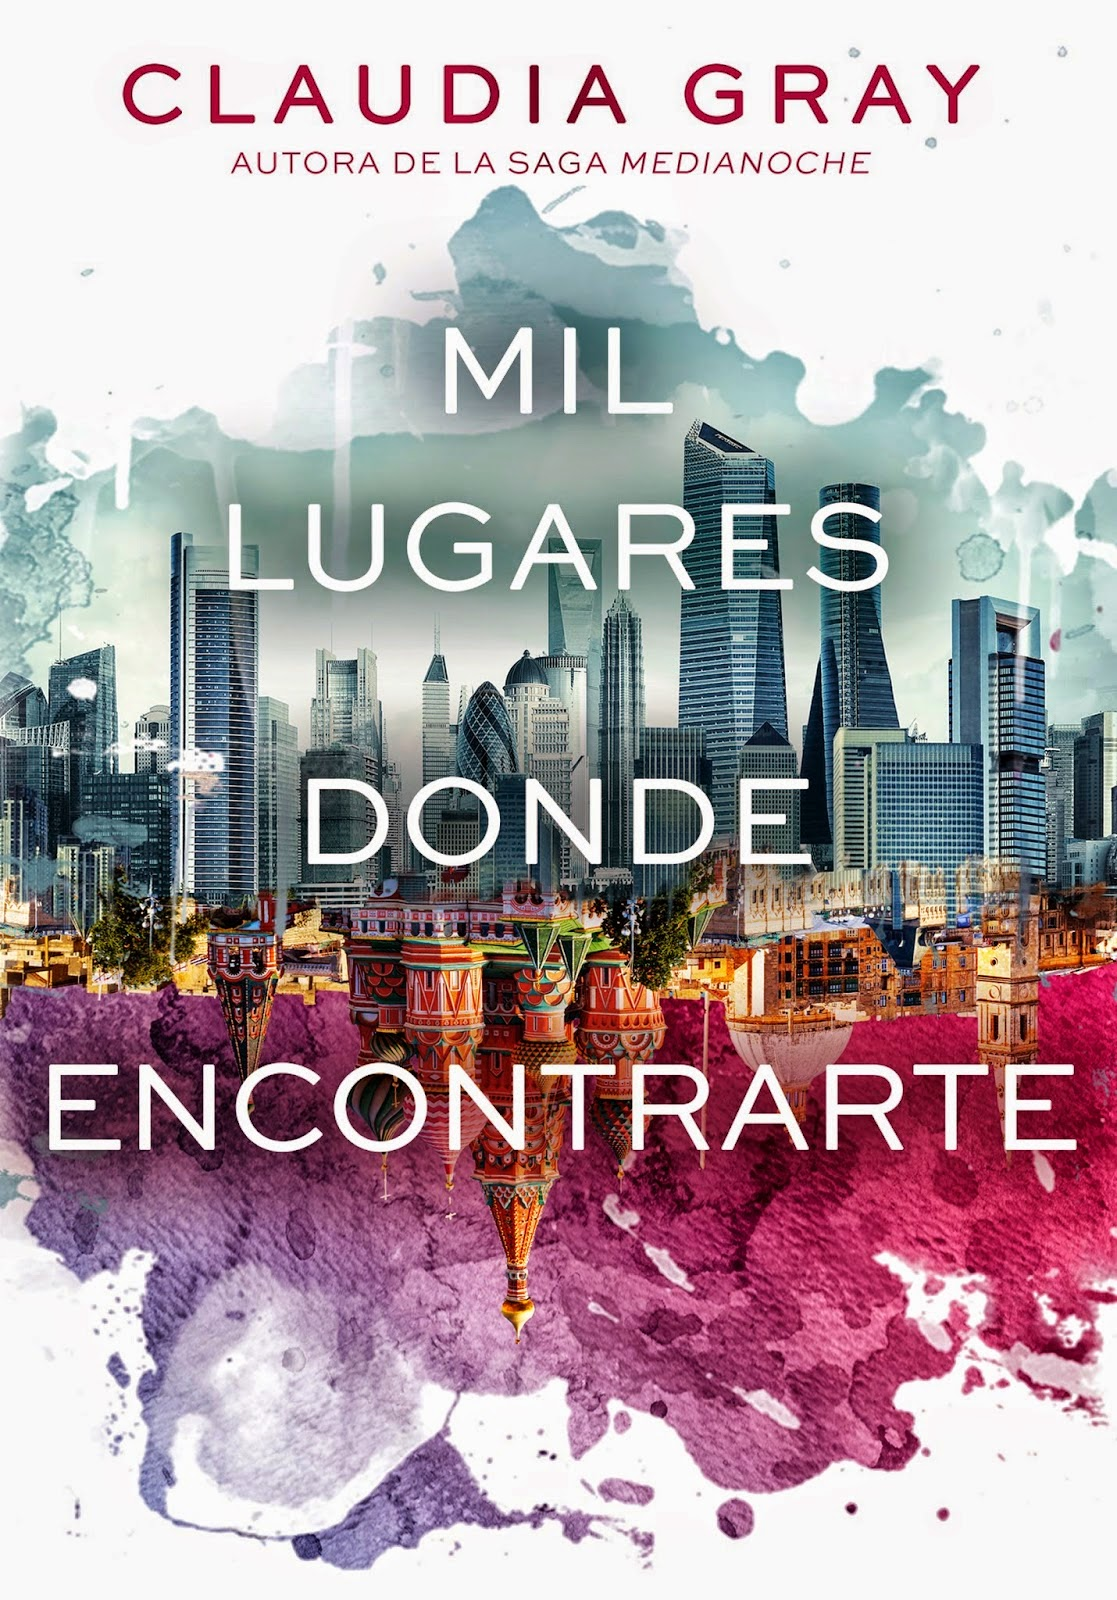 mil-lugares-donde-encontrate-claudia-gray-book-tag-el-movil-literatura-opinion-nominaciones-blogs-blogger